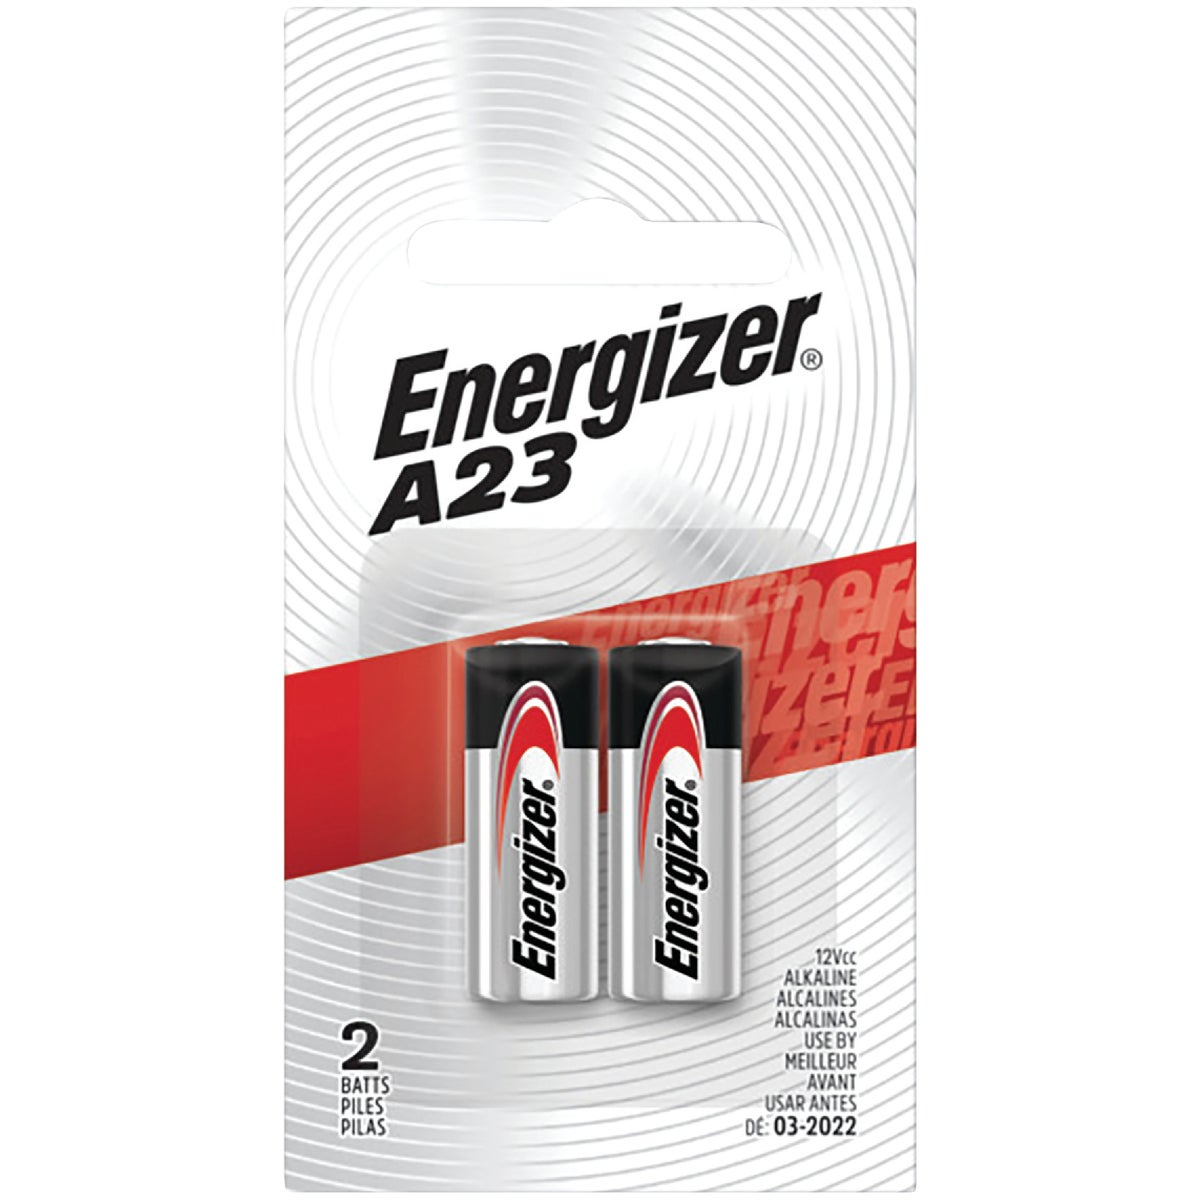 2PK 12V PHOTO BATTERY - A23BPZ-2 by Energizer